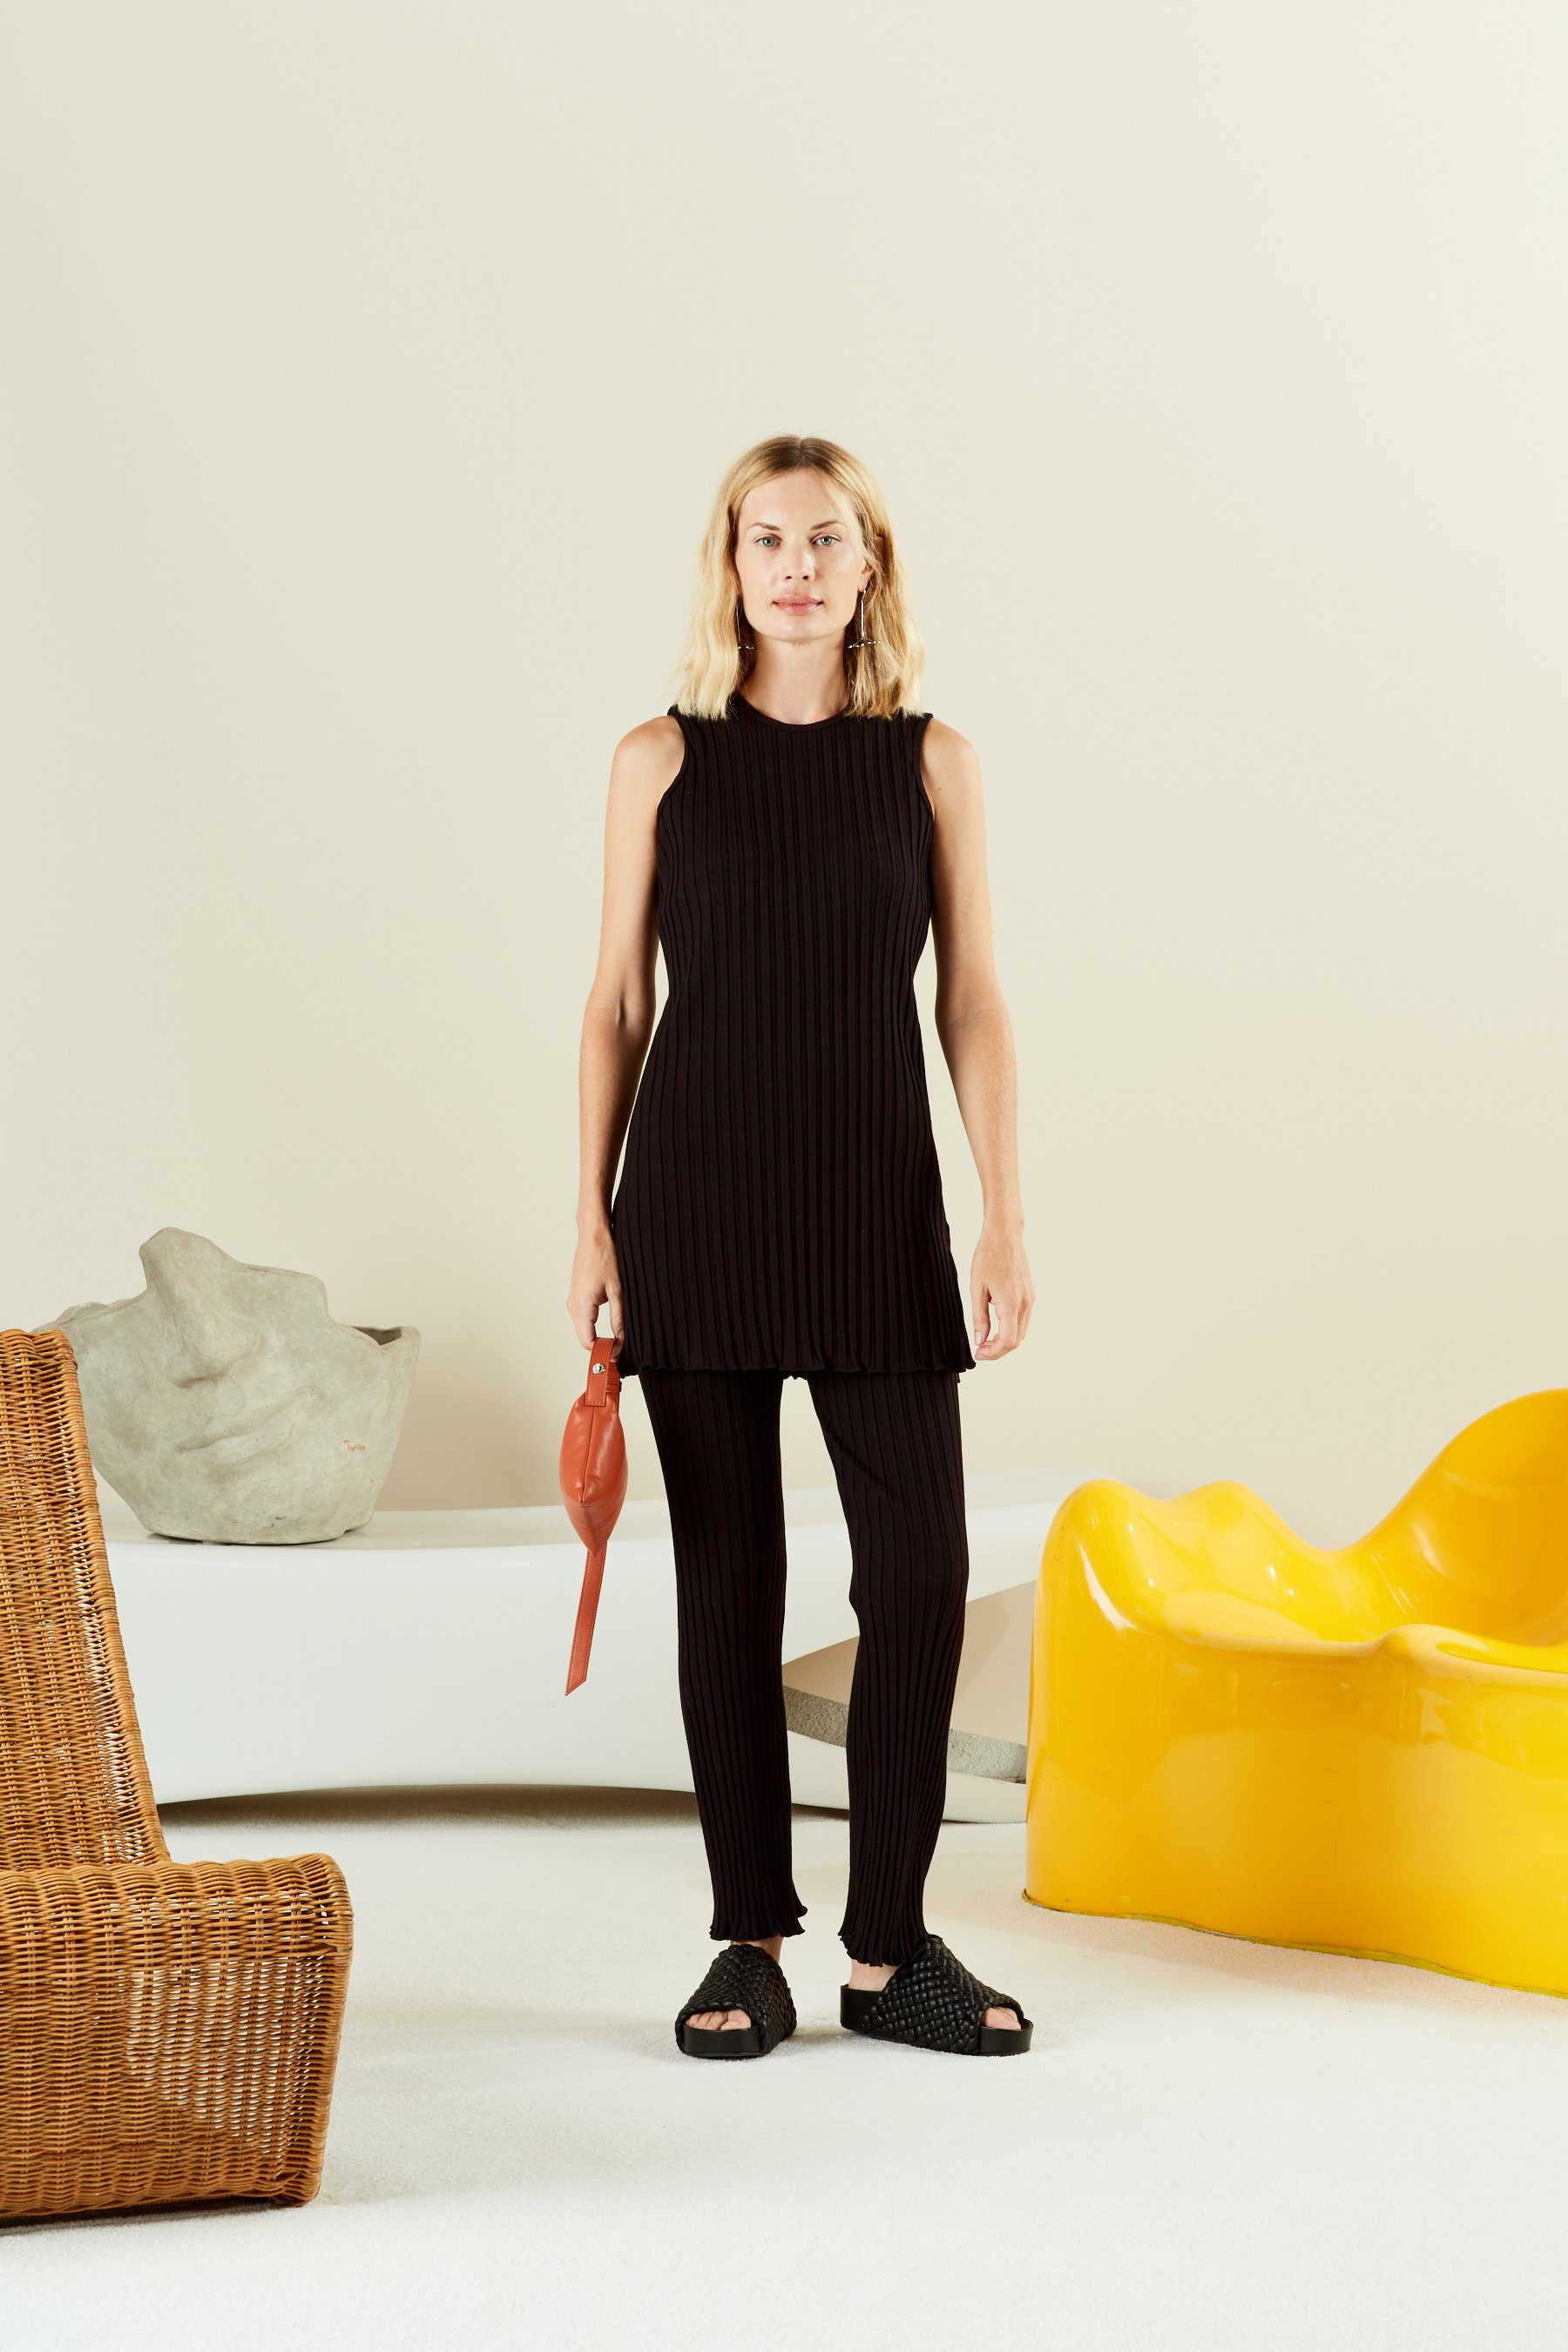 Aukai Tunic in Black by Simon Miller - 1